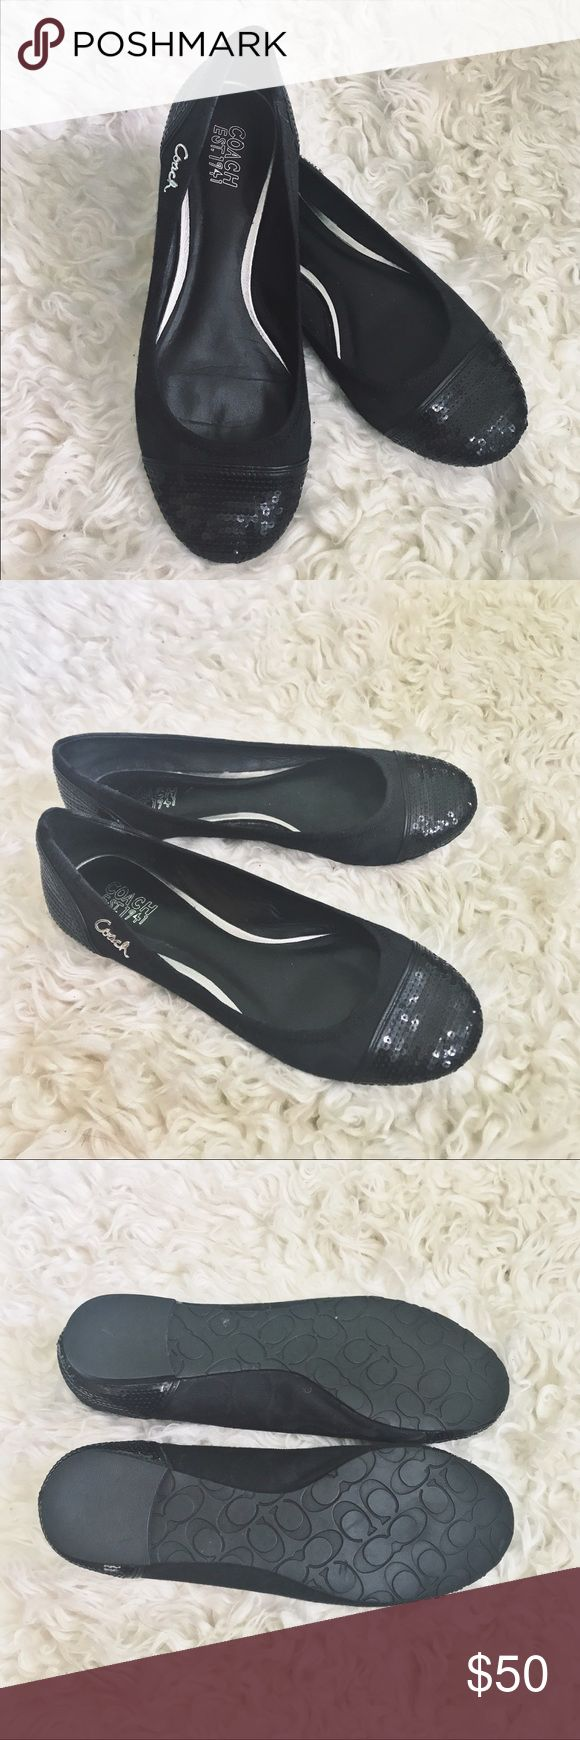 Black Coach Flats Only worn once black fabric signature C print Coach flats with black sequin accents on toe and heel, padded leather interior, rubber sole, Coach metal detail on the outer side of both shoes. Coach Shoes Flats & Loafers